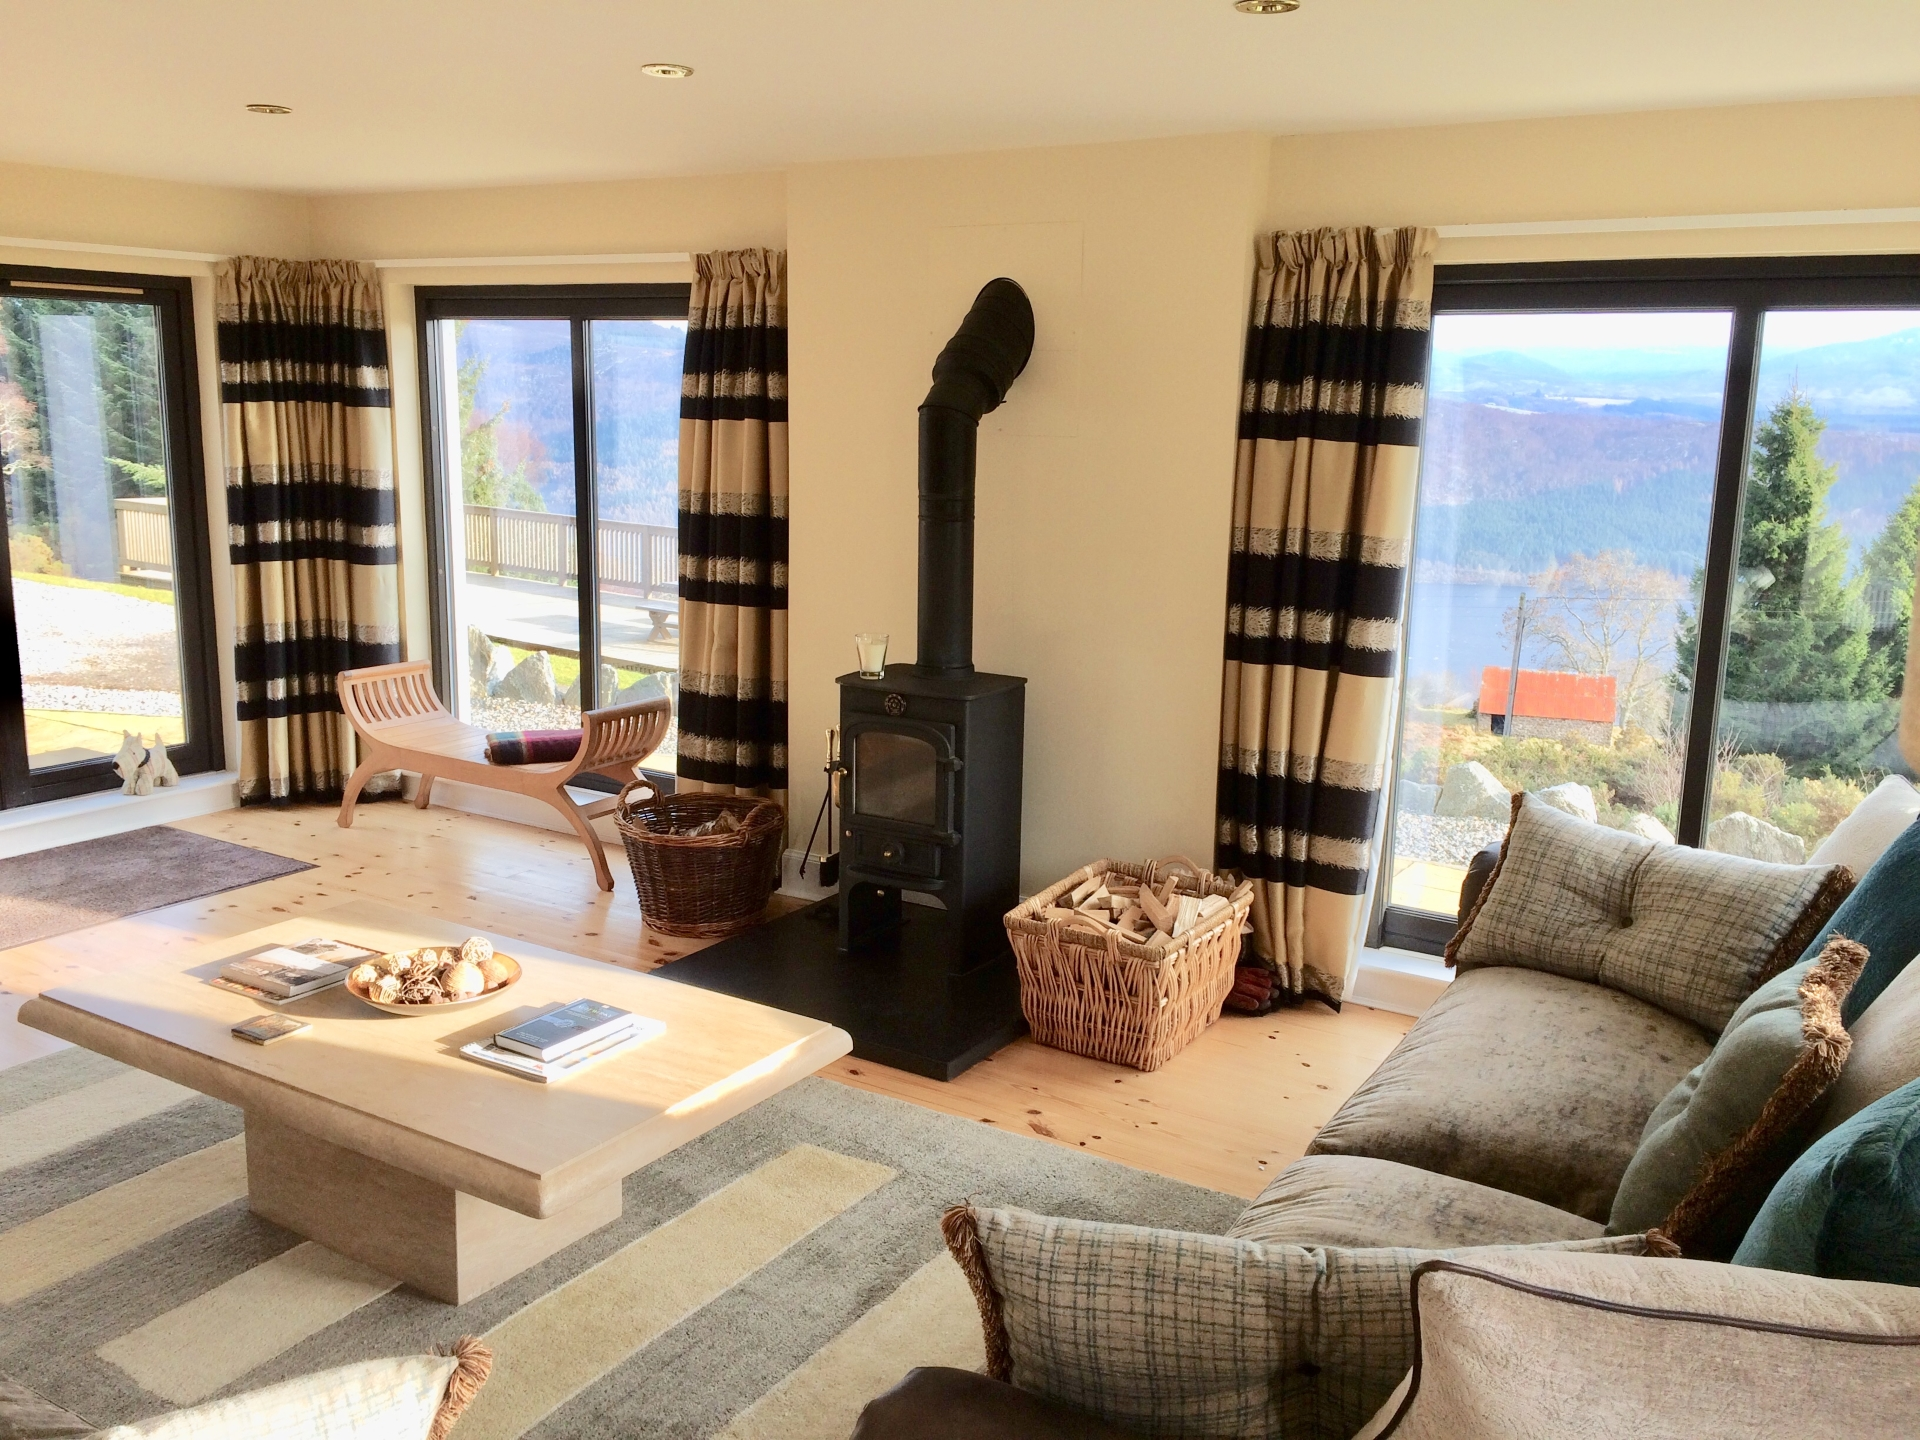 Drovers Lodge - Guest Sitting Room View